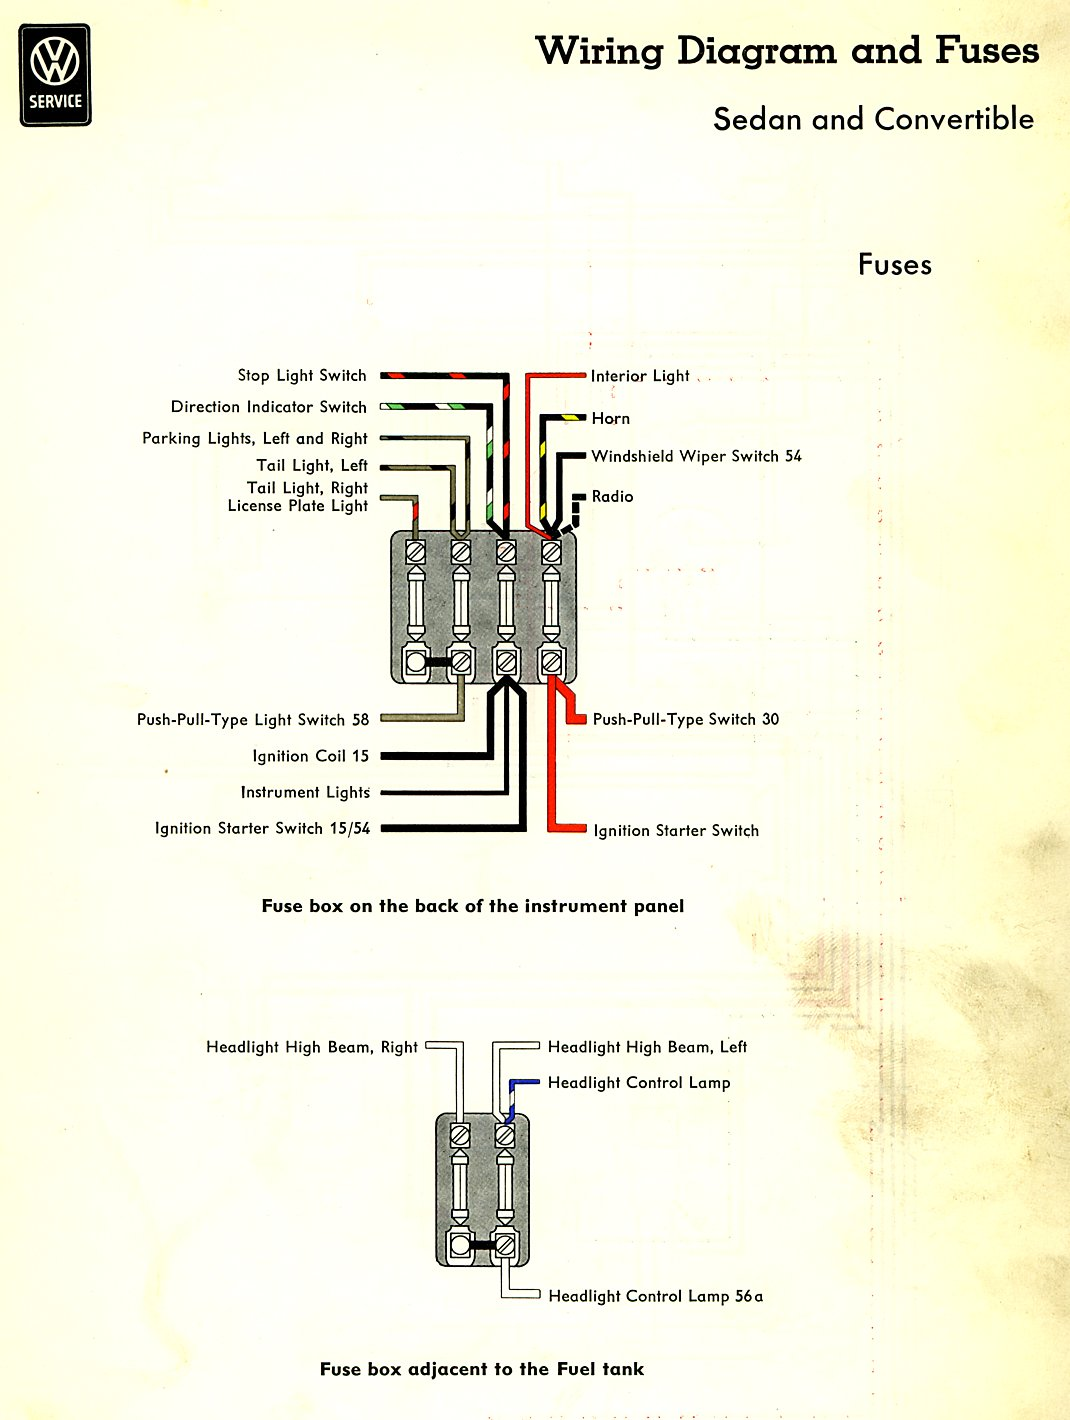 54AD6 1972 Jeep Cj5 Wiring Diagram Regulator | Digital Resources on jeep cj ignition switch removal, jeep cj wiper switch wiring diagram, jeep wrangler yj ignition switch wiring diagram, jeep cj ignition switch assembly diagram, jeep cj engine wiring diagram, jeep zj ignition switch wiring diagram, jeep ignition switch problems,